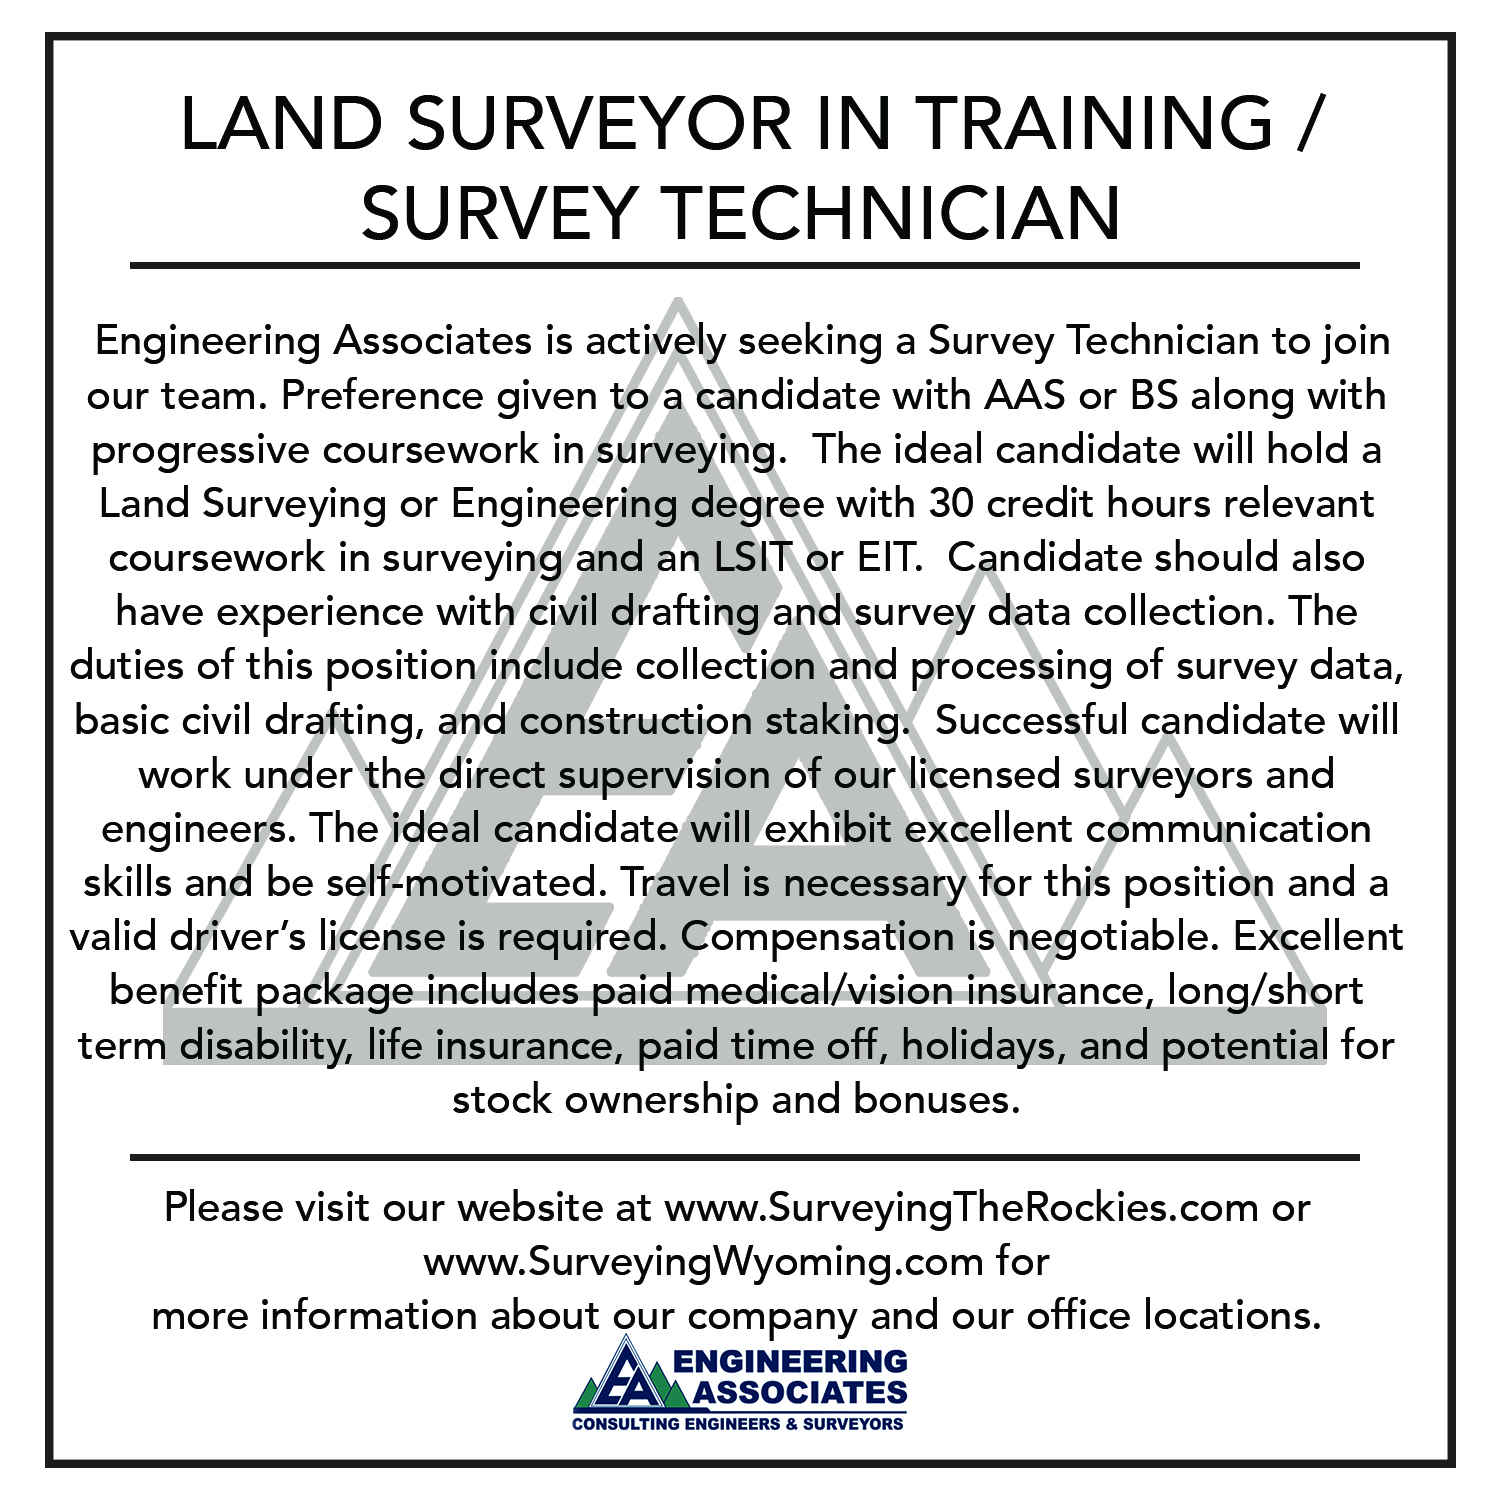 LAND SURVEYER TRAINING JOB POST.jpg